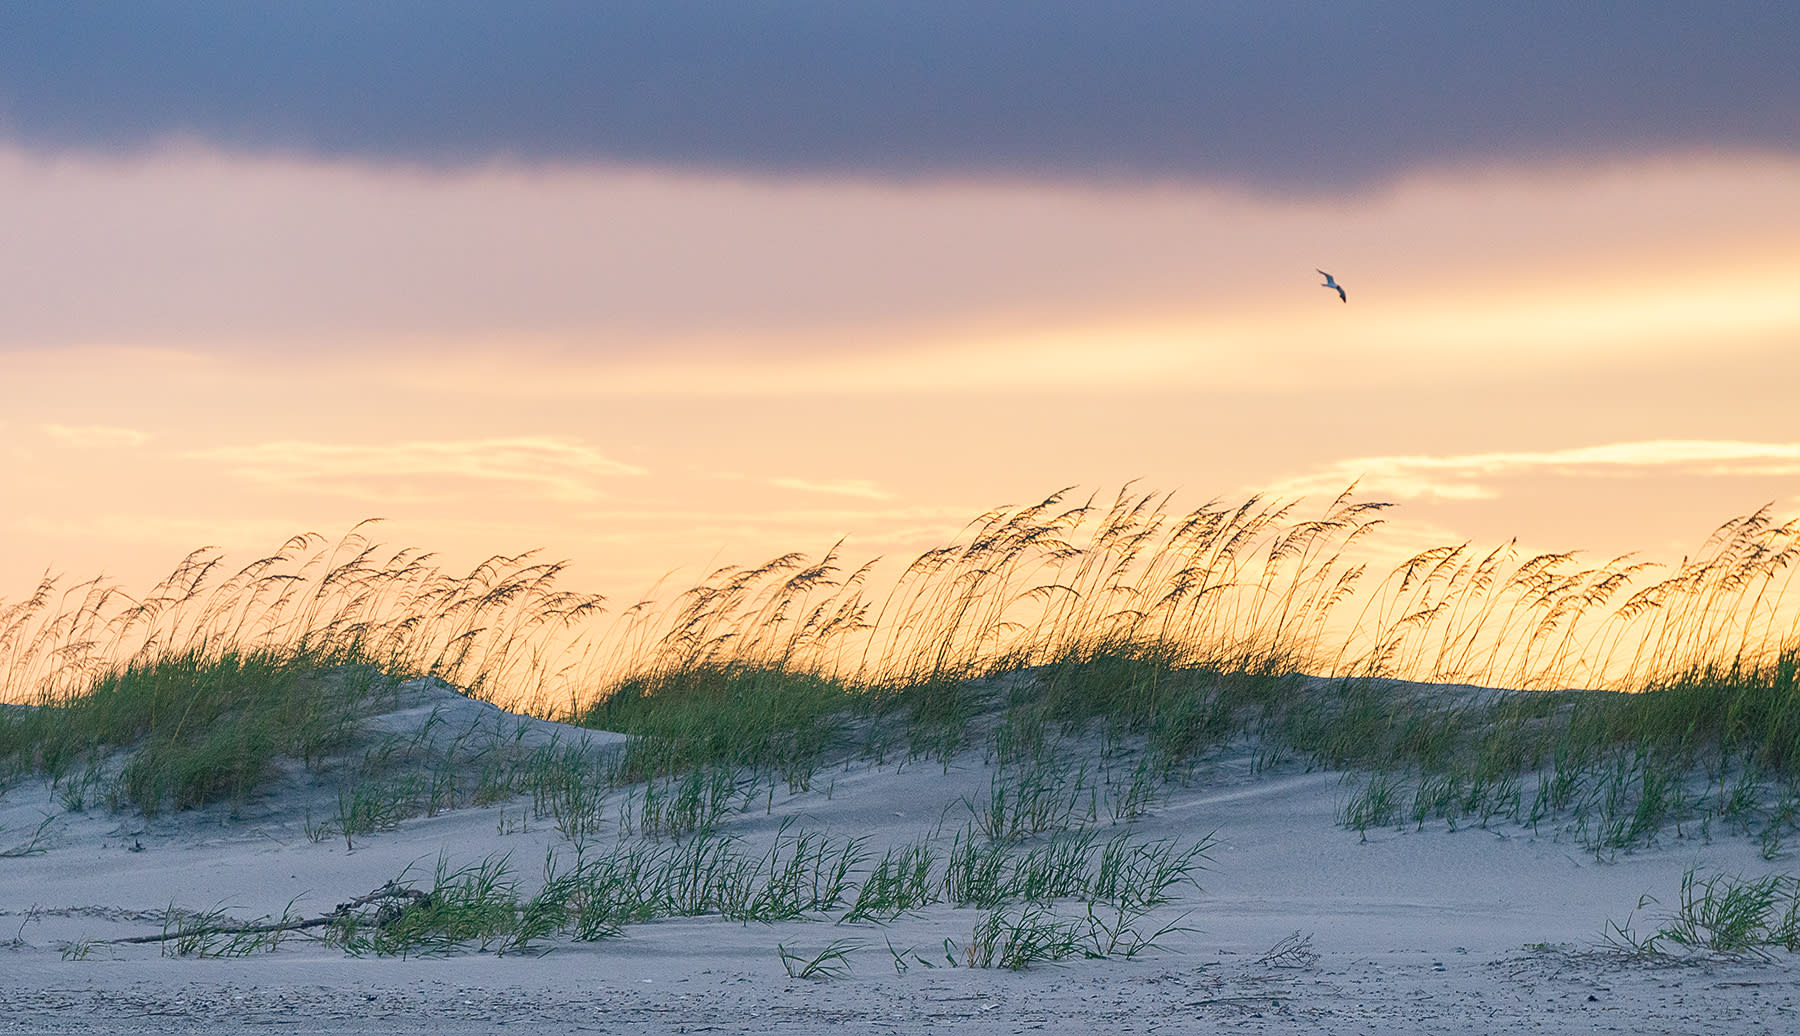 <div class='title'>           Folly Sunset Sand dunes and bird         </div>